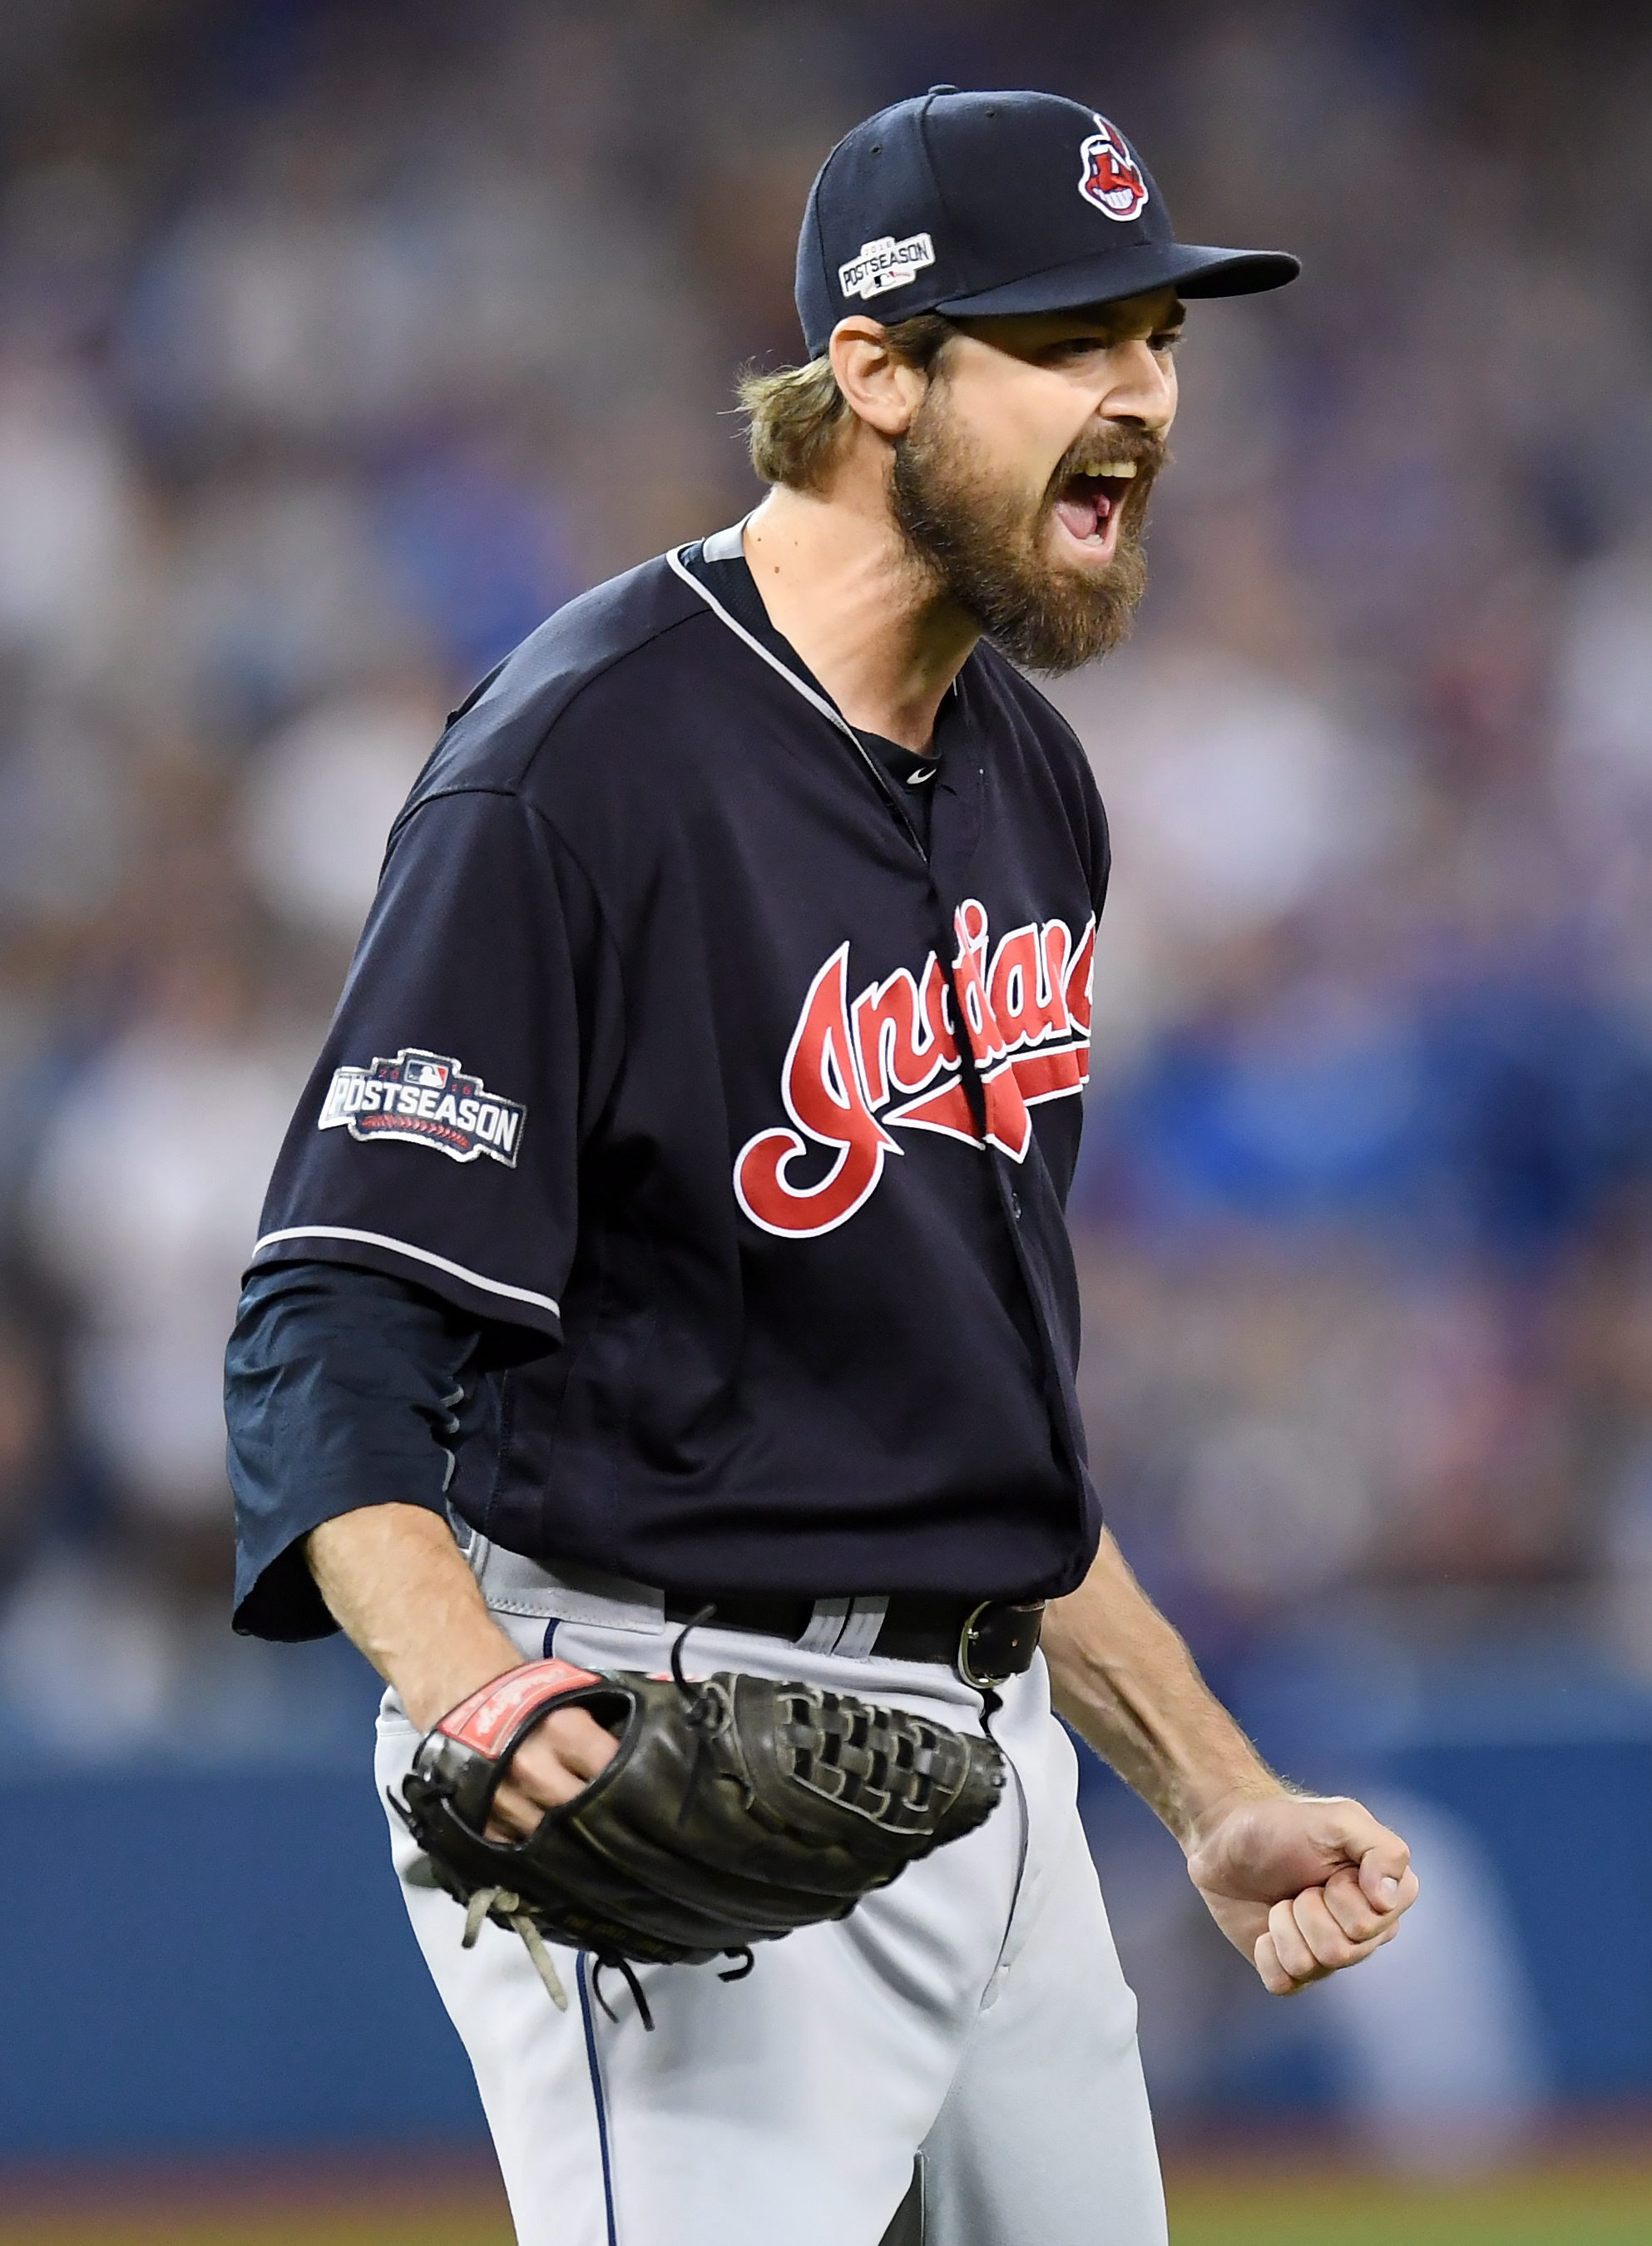 Cleveland Indians relief pitcher Andrew Miller celebrates after Toronto Blue Jays' Josh Donaldson hit into an inning-ending double play during sixth inning during Game 5 of baseball's American League Championship Series in Toronto, Wednesday, Oct. 19, 201